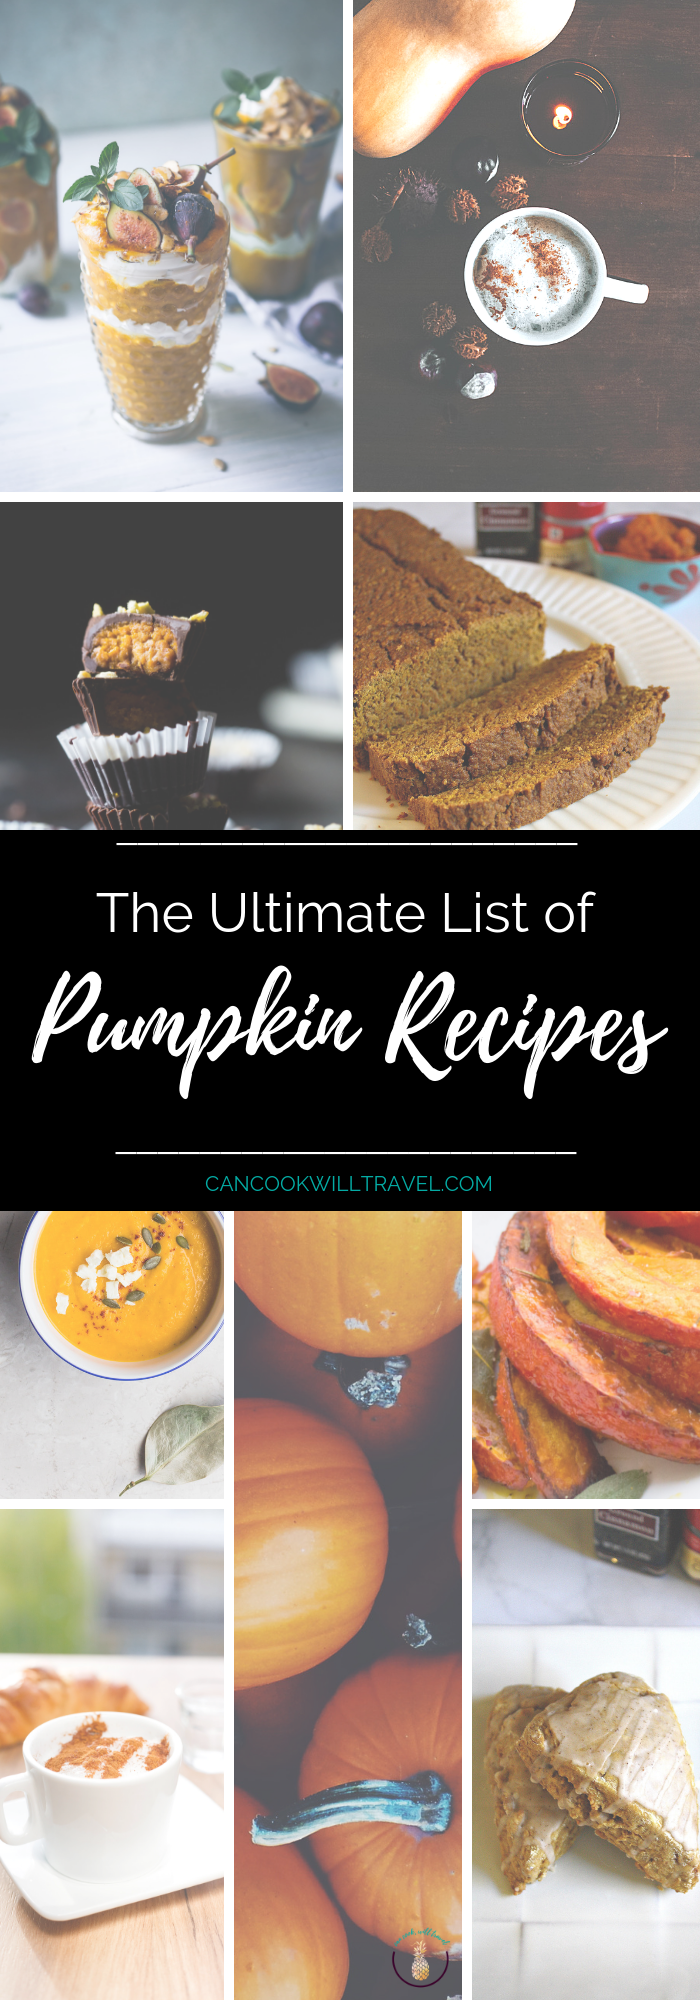 Ultimate Pumpkin Recipes_Tall